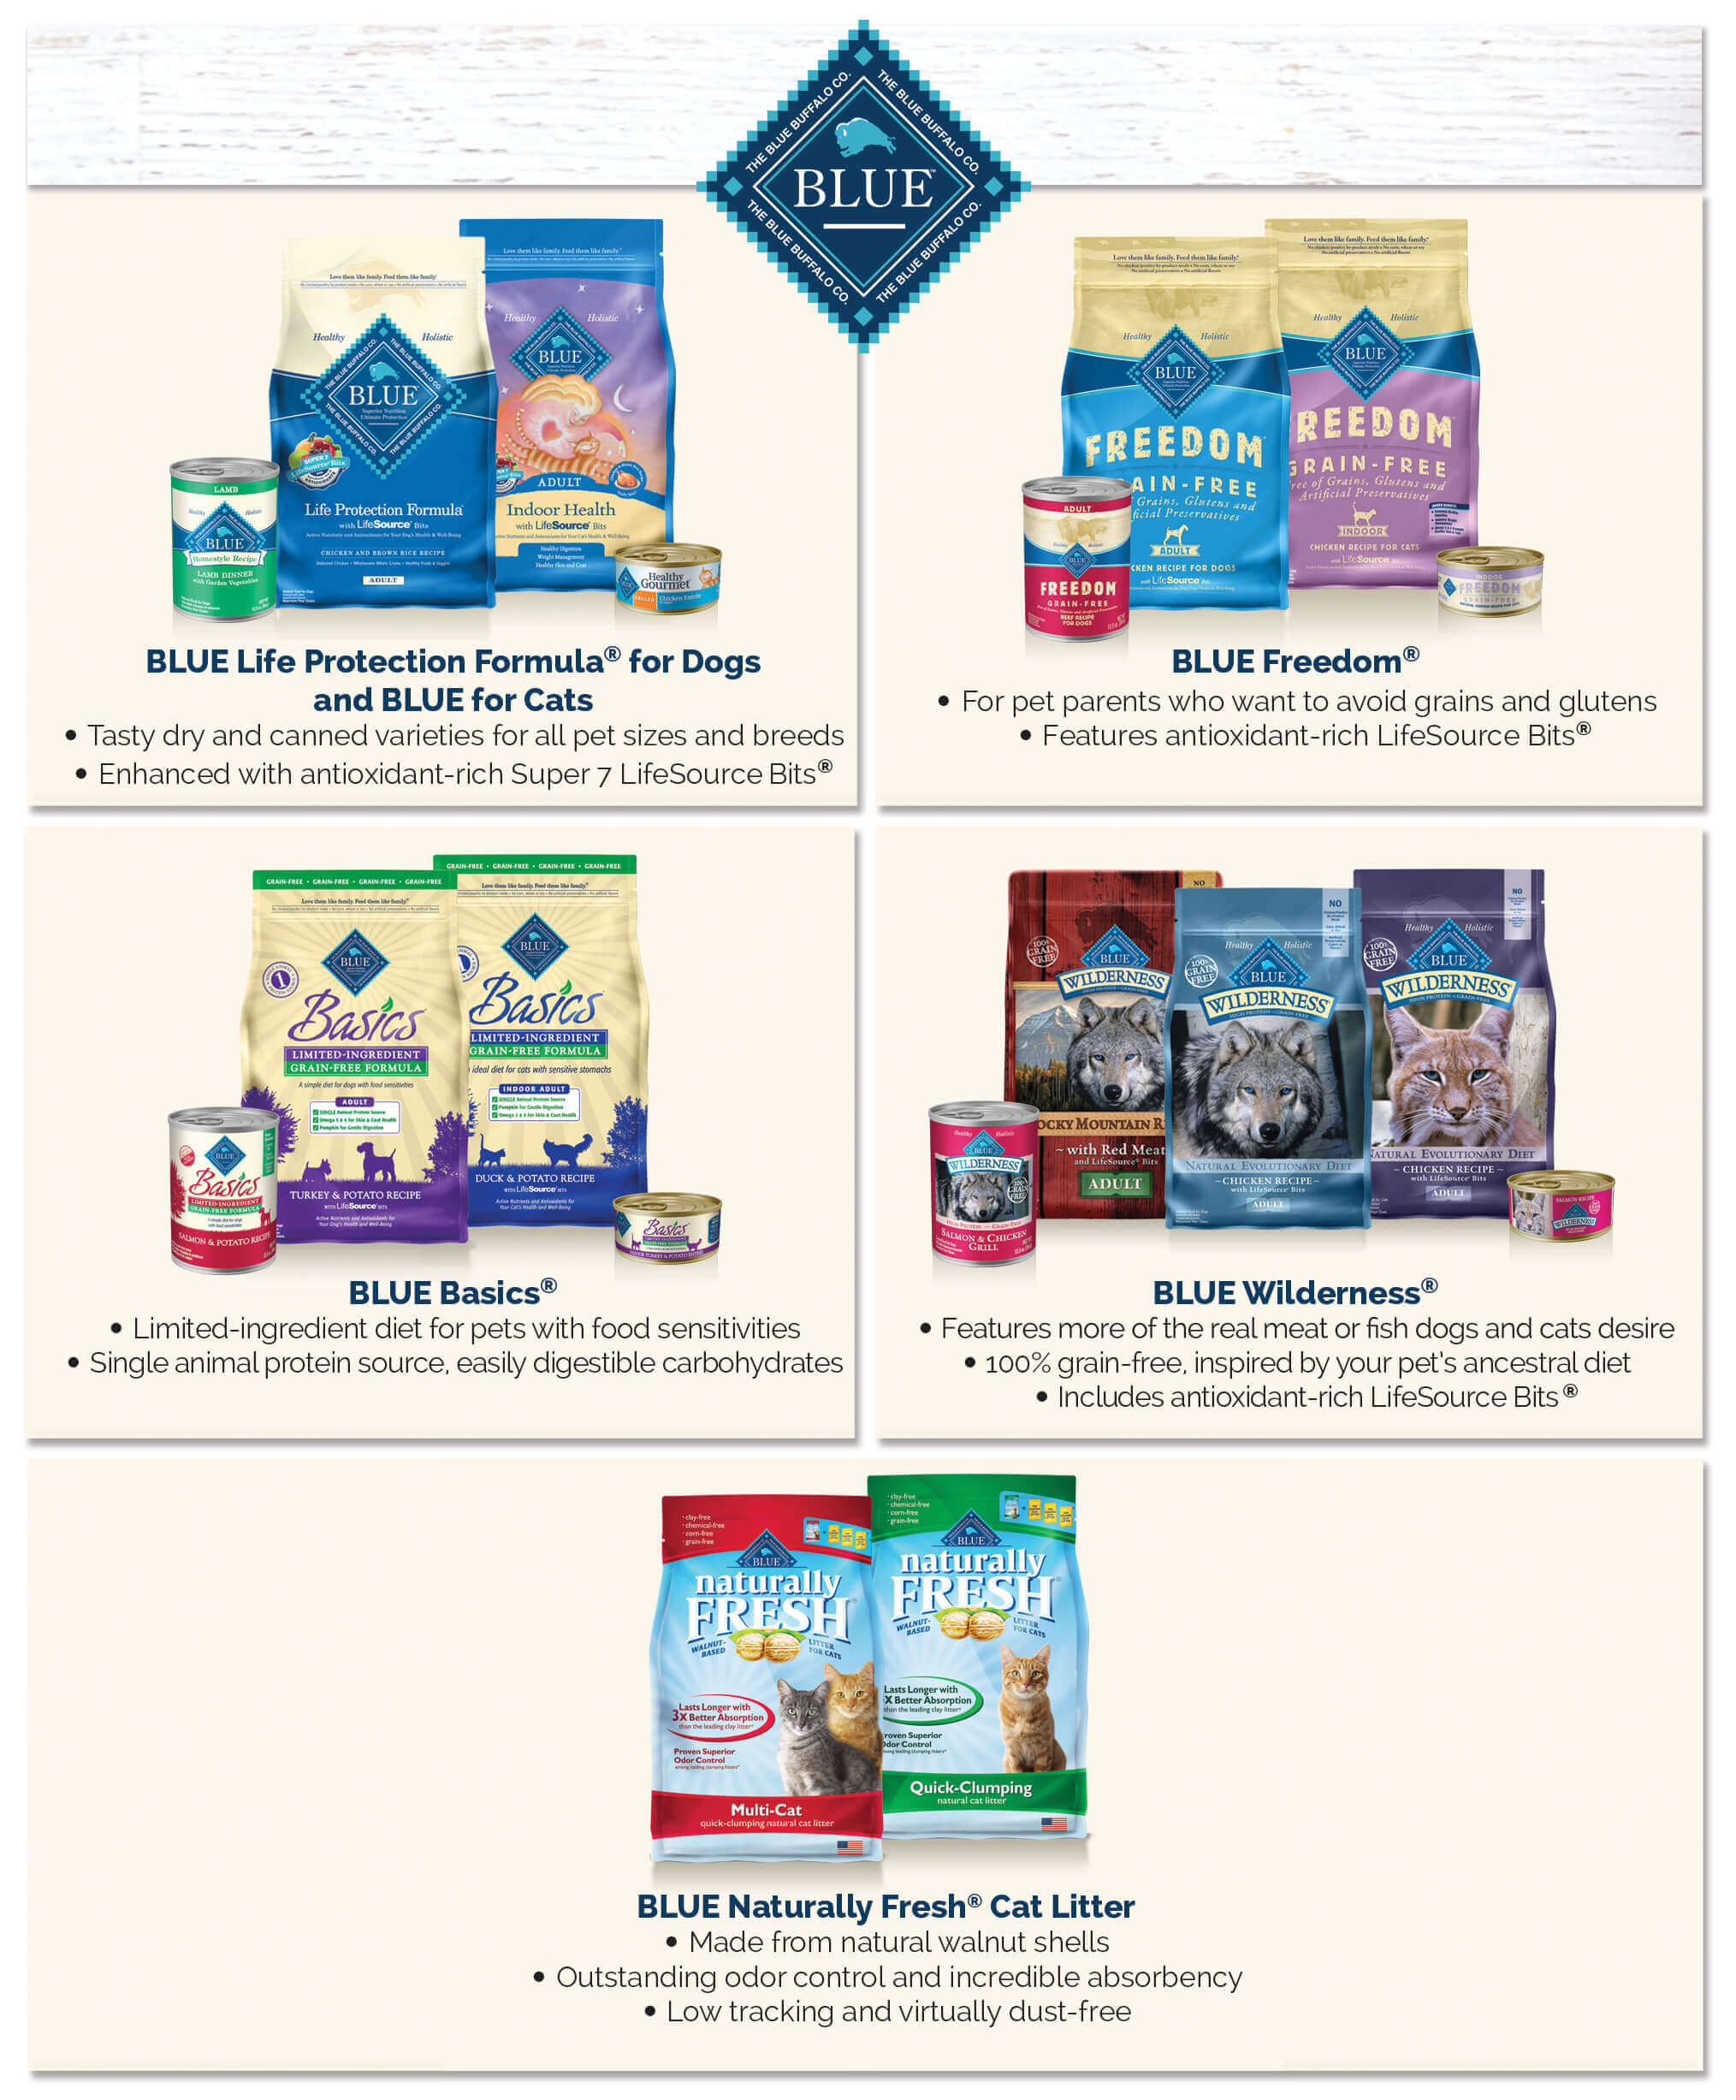 blue life protection formula for dogs and blue for cats - tasty dry and canned varieties for all pet size and breeds, enhanced with antioxidant rich super 7 lifesource bits. blue freedom - for pet parents who want to avoid grains and gluten, features antioxidant rich lifesource bits. blue basics - limited ingredient diets for pets with food sensitivities, single manual protein source, easily digestibility carbohydrates. blue wilderness - features more of the real meat or fish dogs and cats desire, 100% grain free, inspired by your pets ancestral diet, includes antioxidant rich lifesource bits. blue naturally fresh cat litter - made from natural walnut shells, outstanding odor control and incredible absorbency, low tracking and virtually dust free